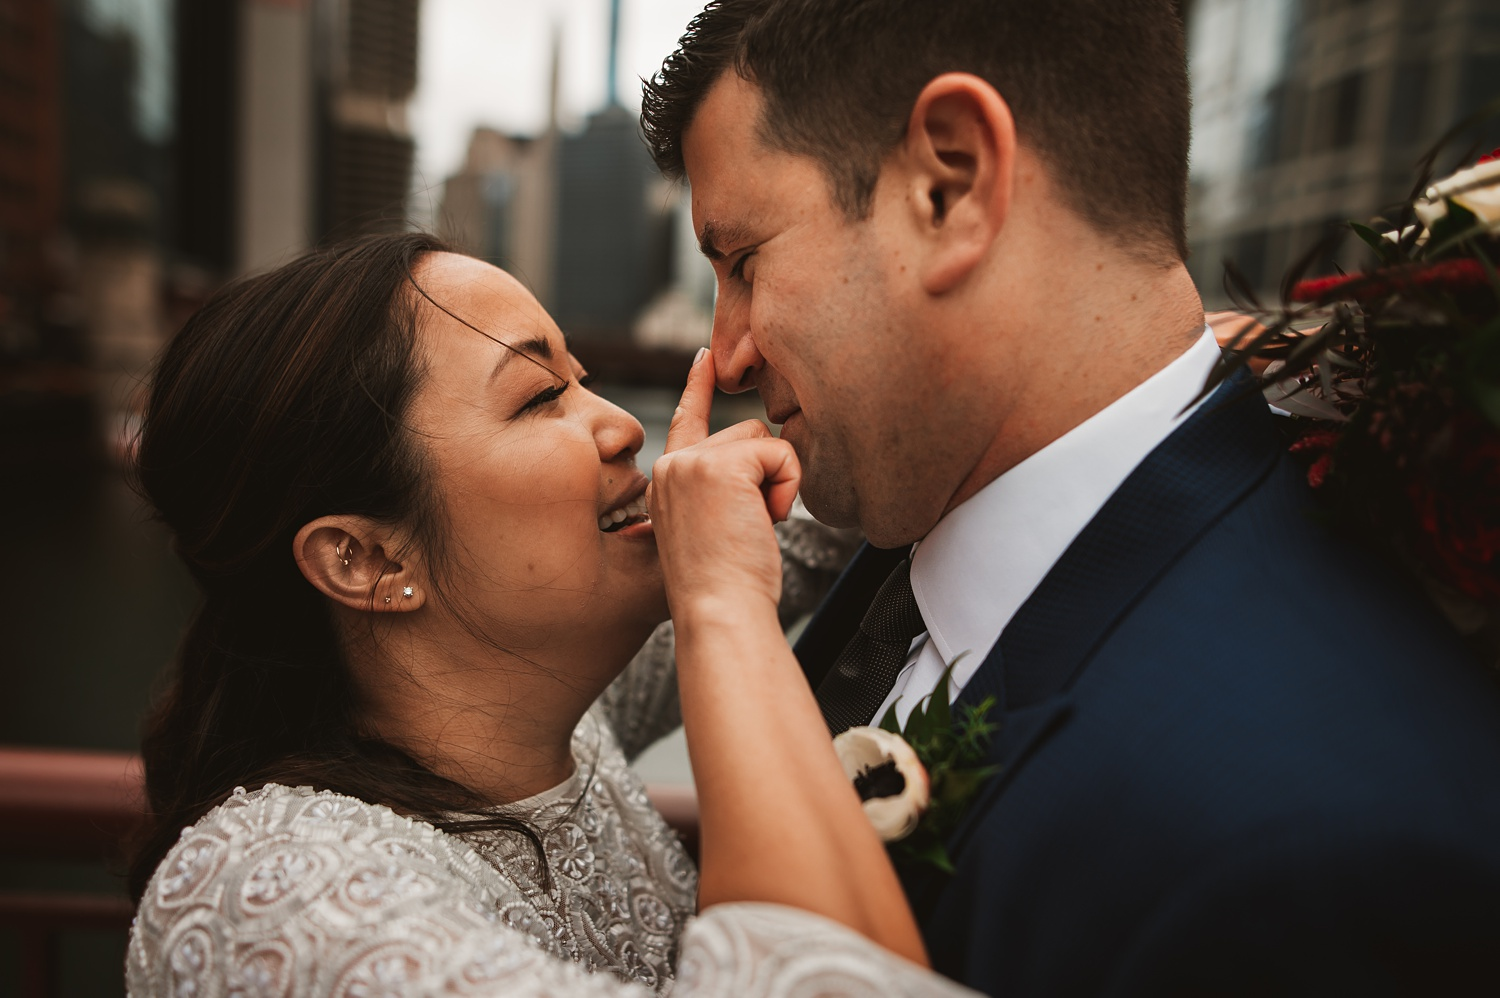 LaSalle Street Bridge wedding photos - The Adamkovi